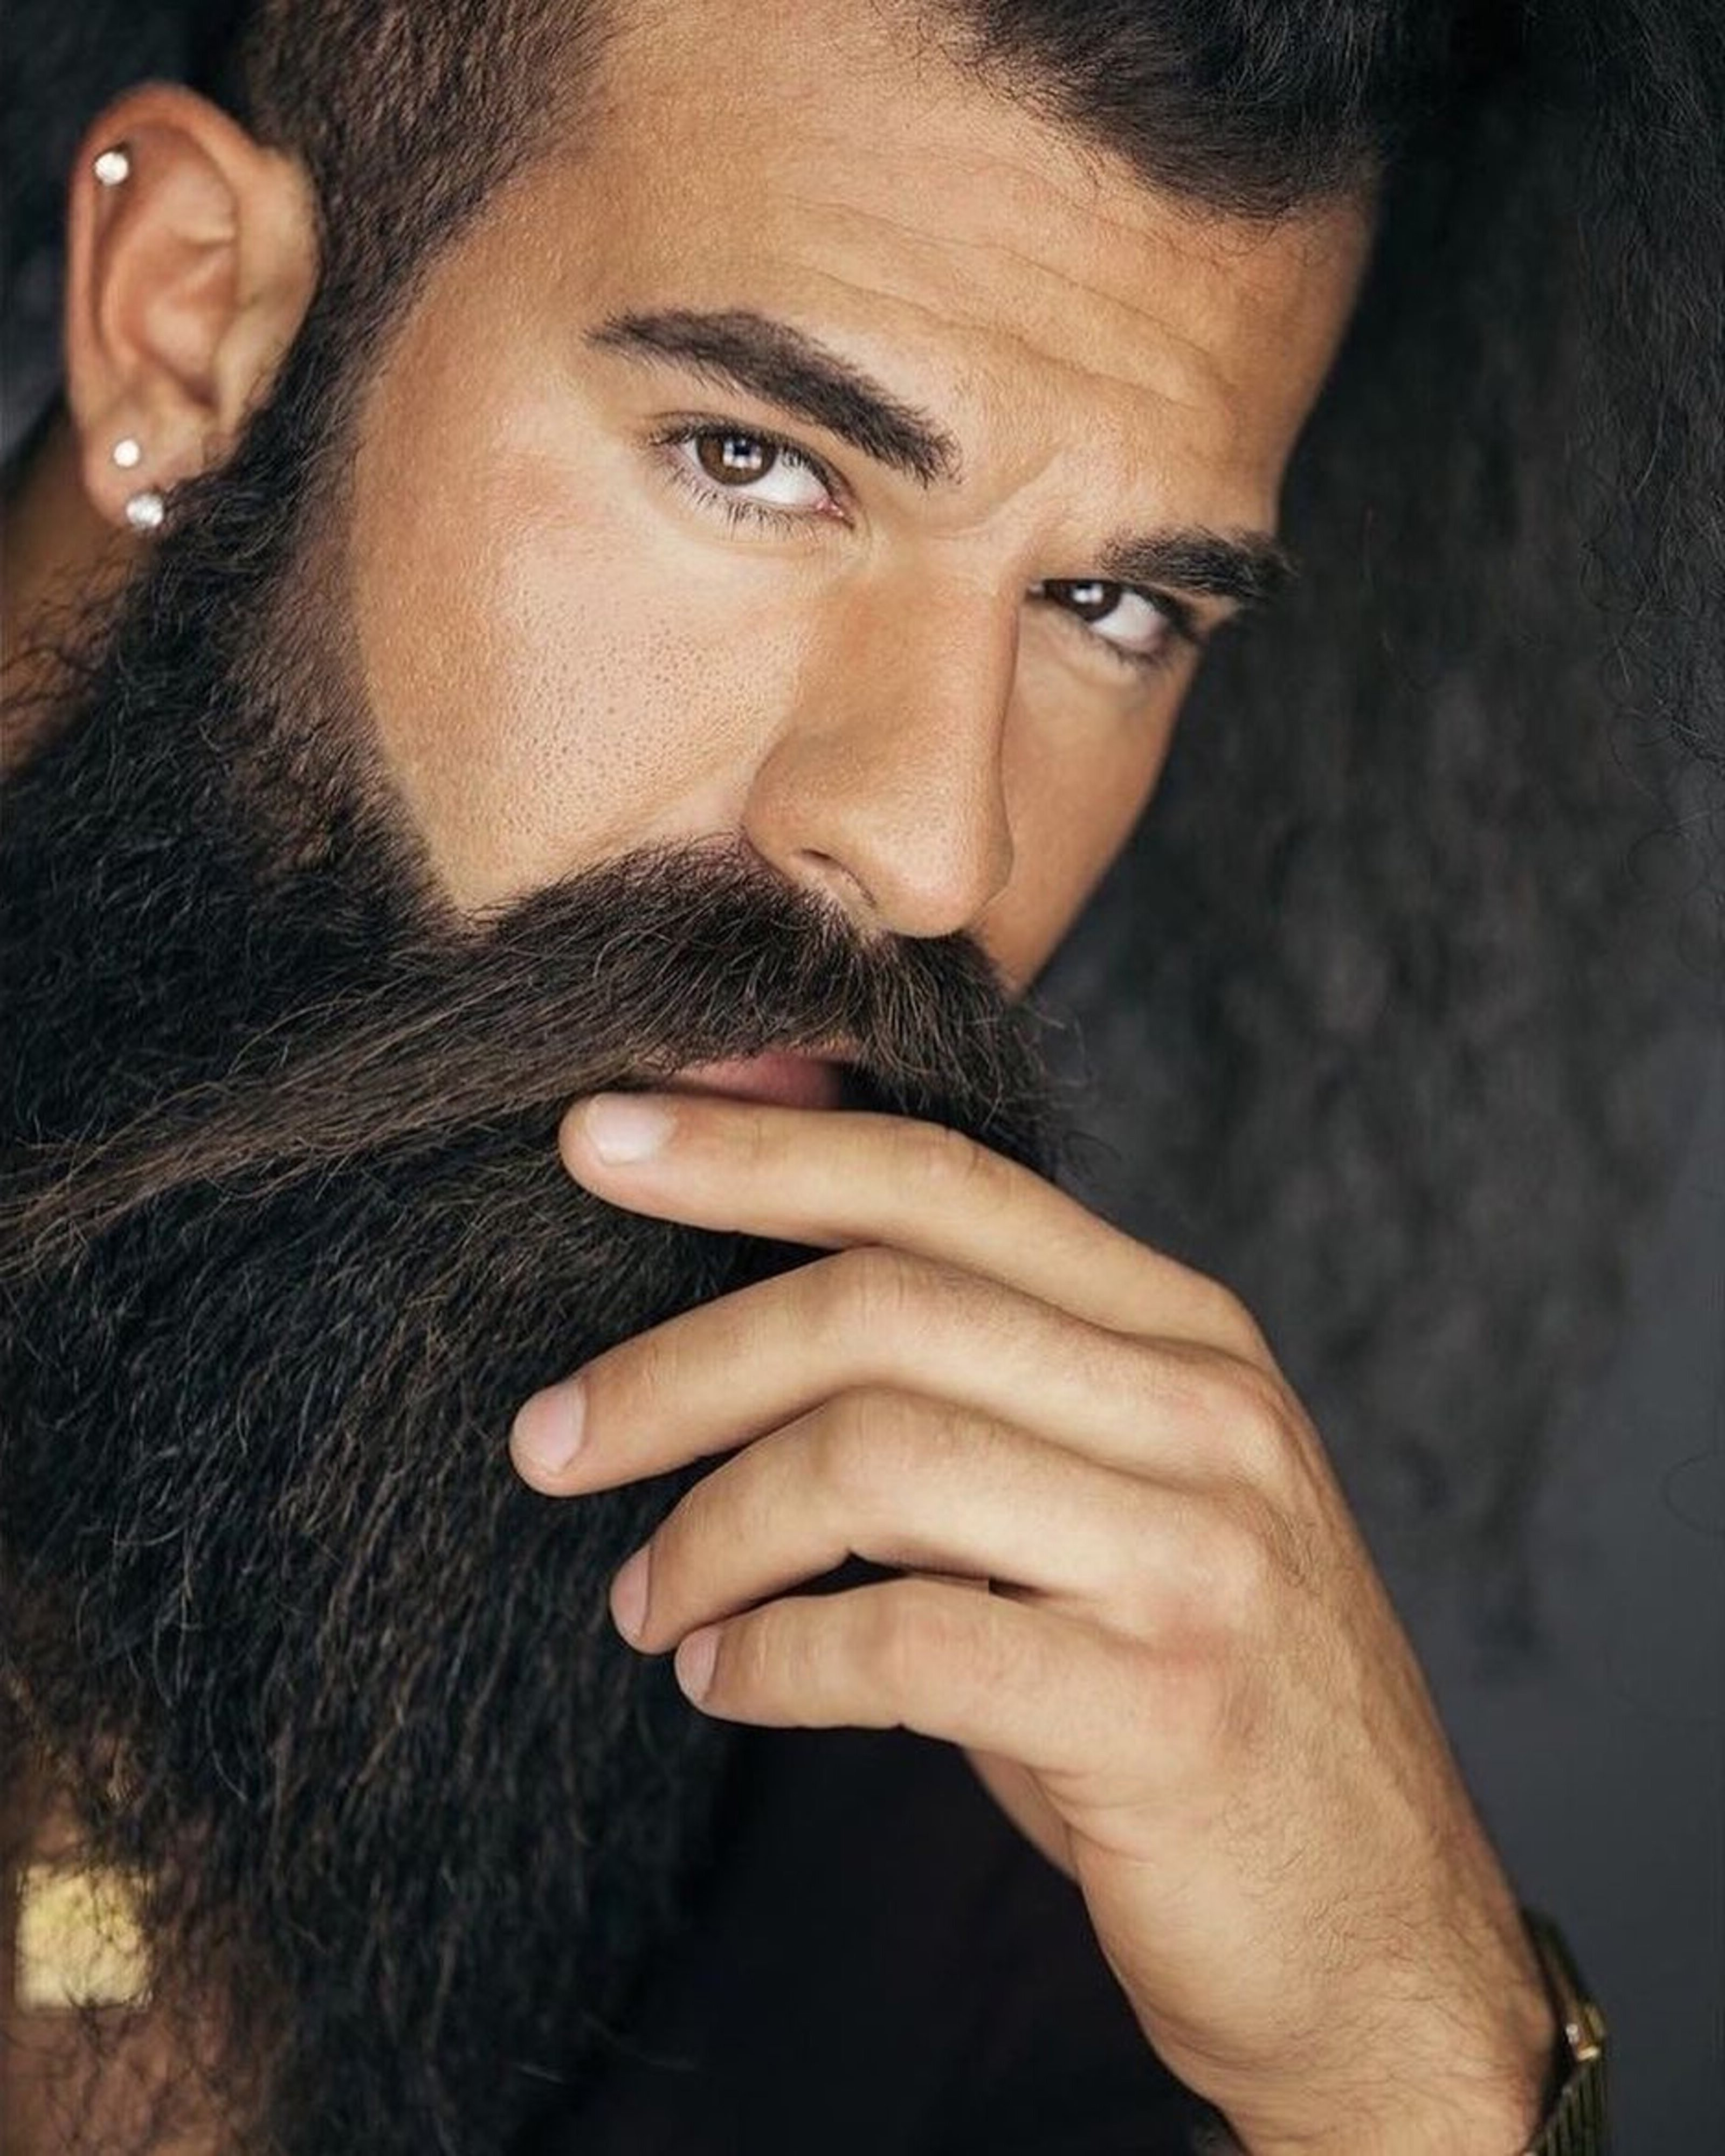 A super long beard for your cool look.